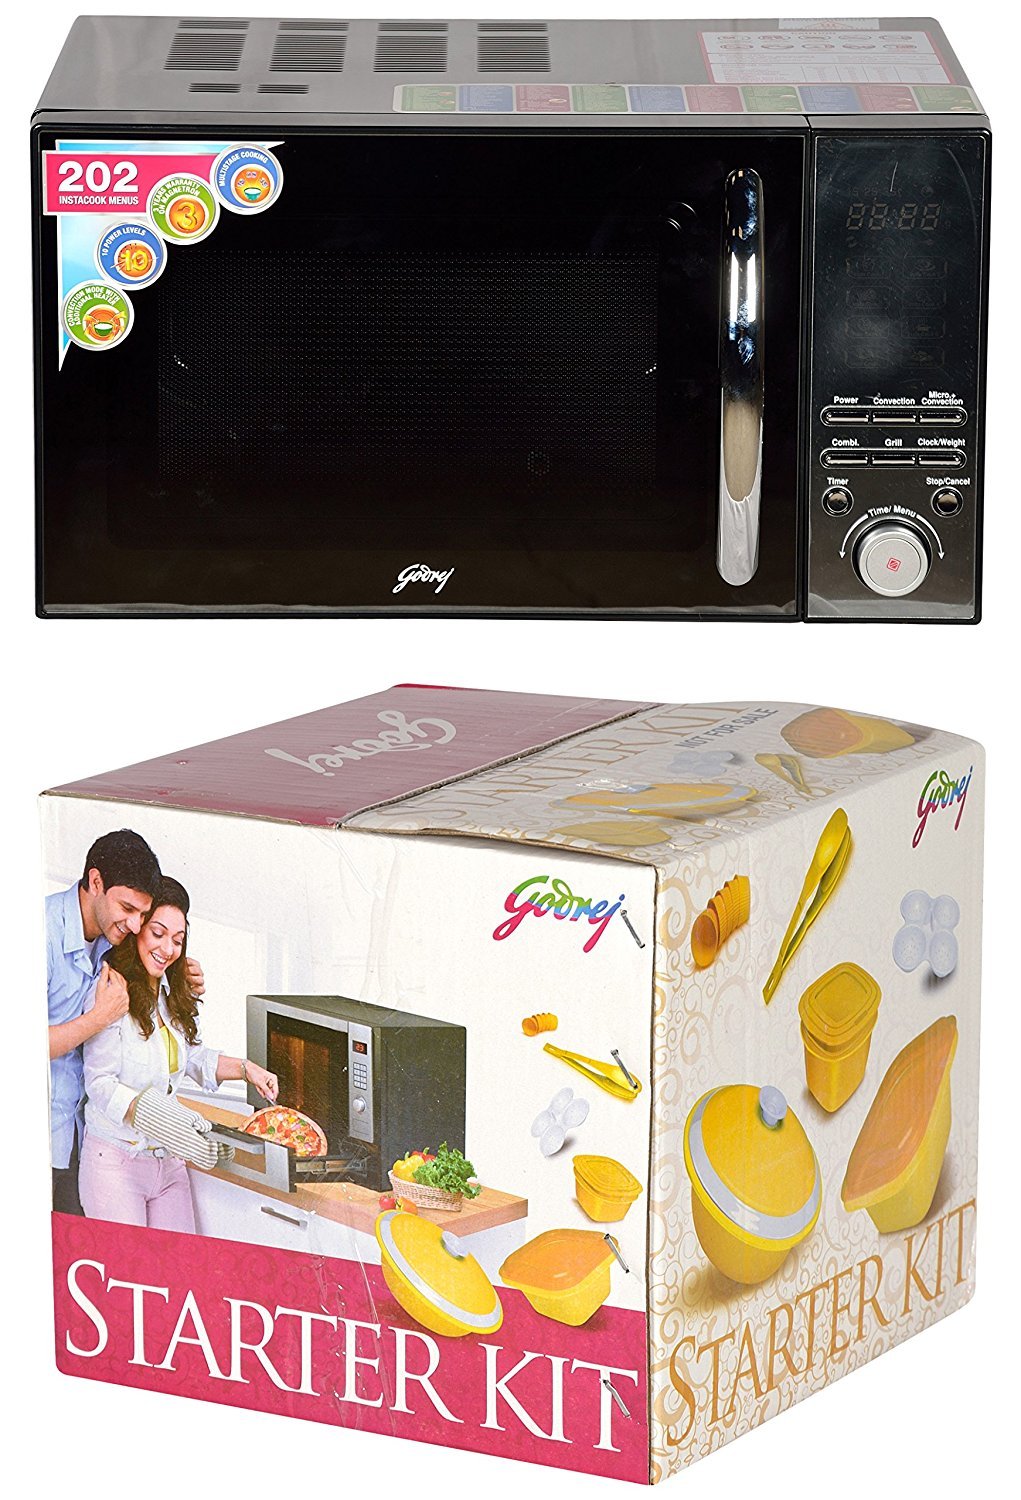 Godrej microwave high capacity oven